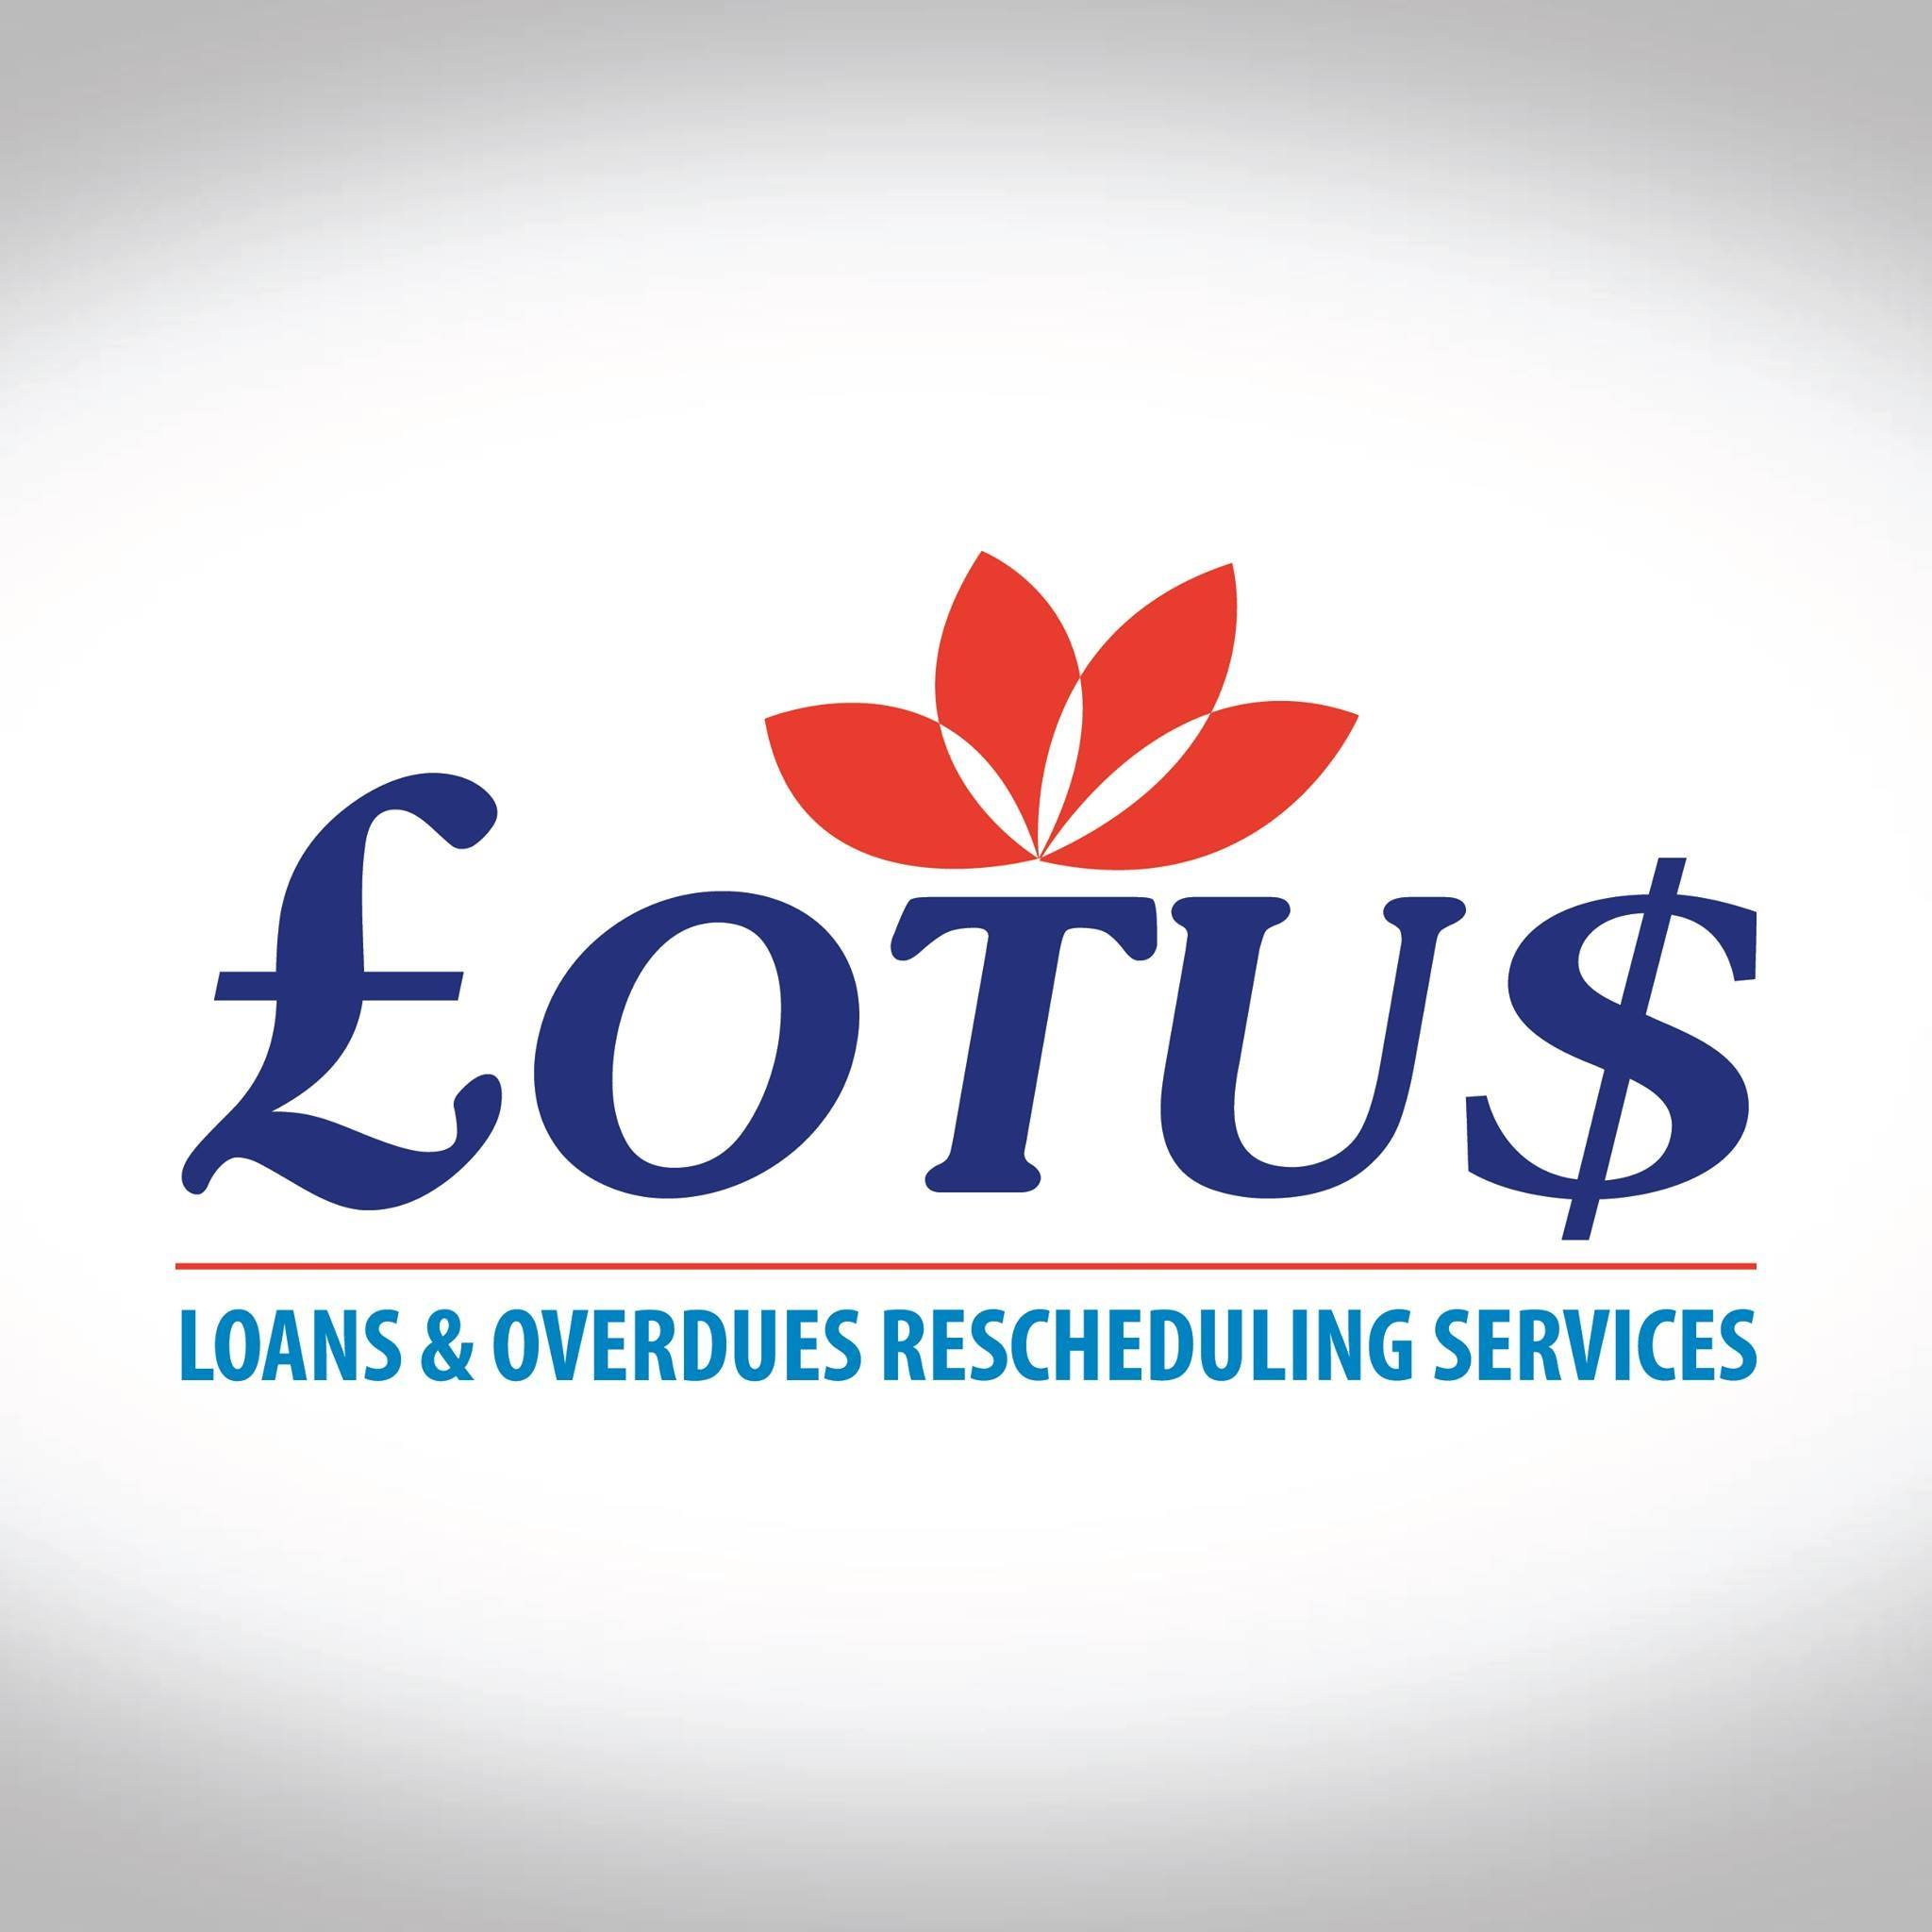 Lotus Loans & Overdues Rescheduling Services